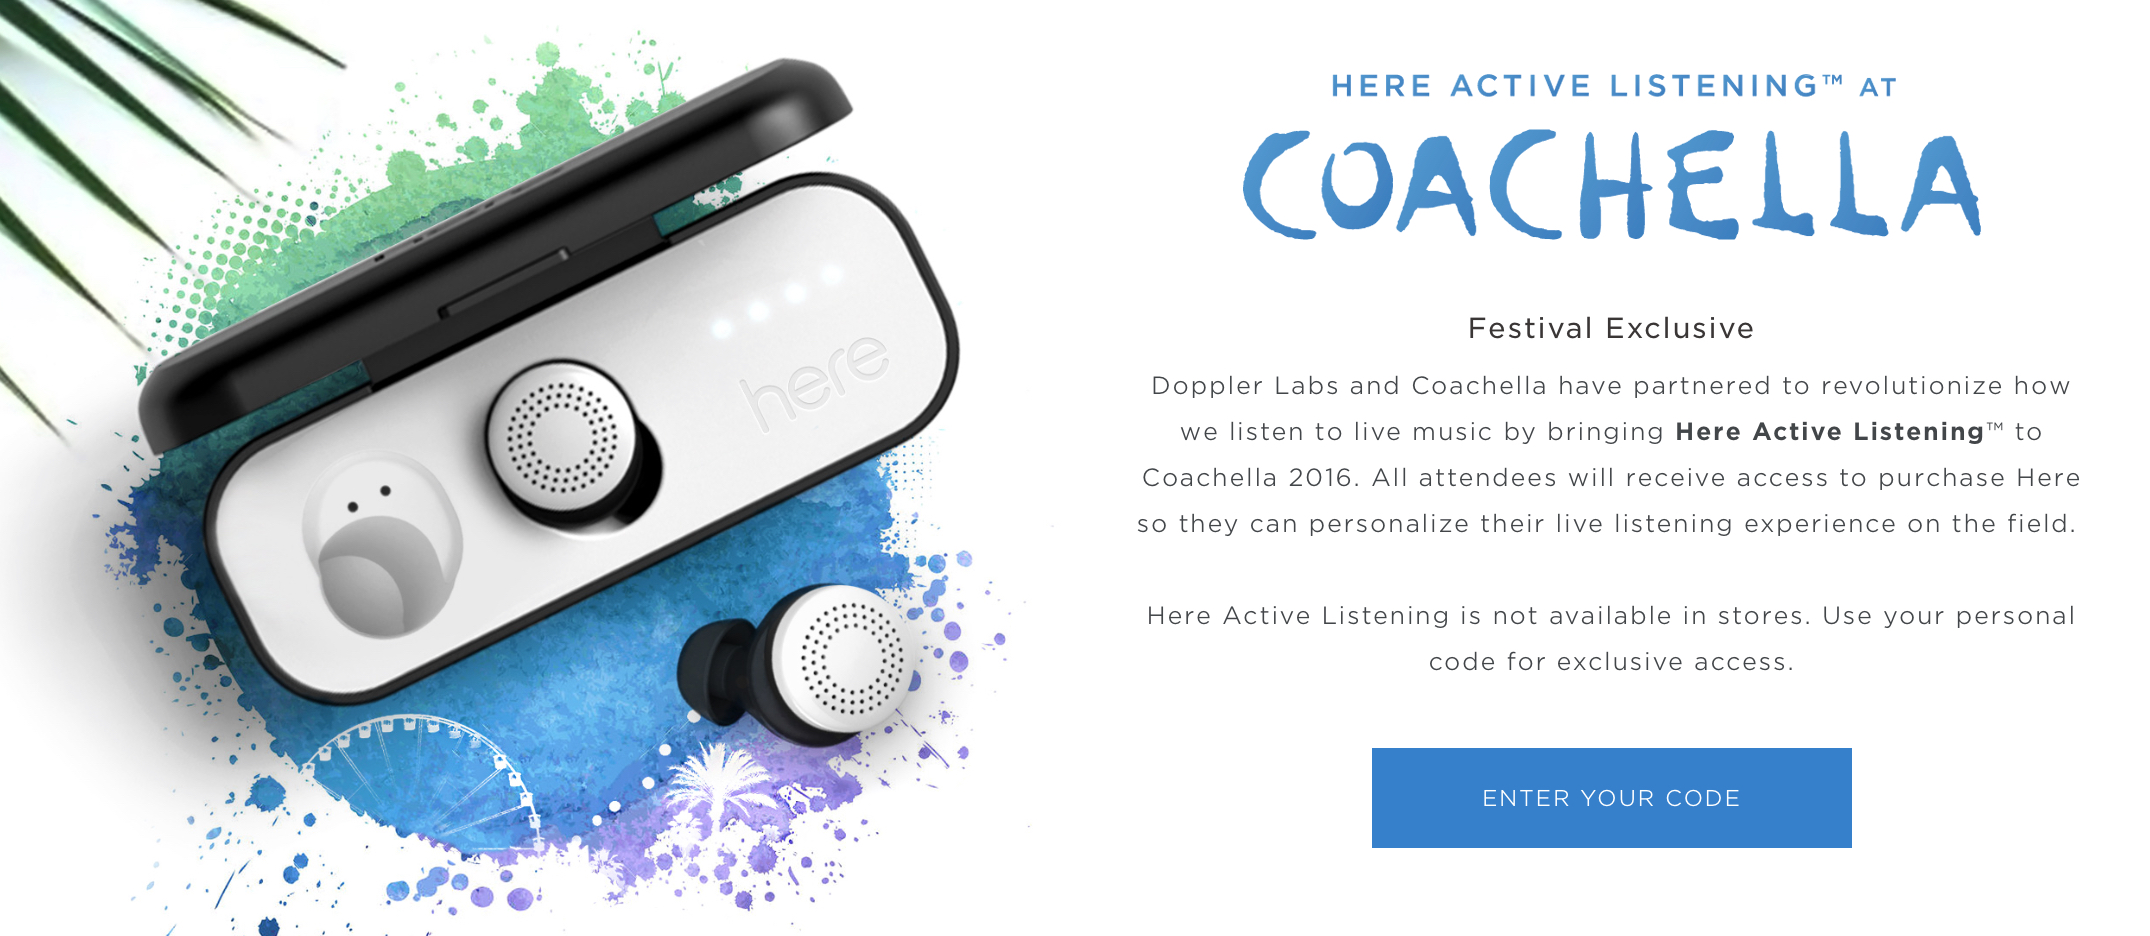 Here Active Listening earbuds promoted at Coachella